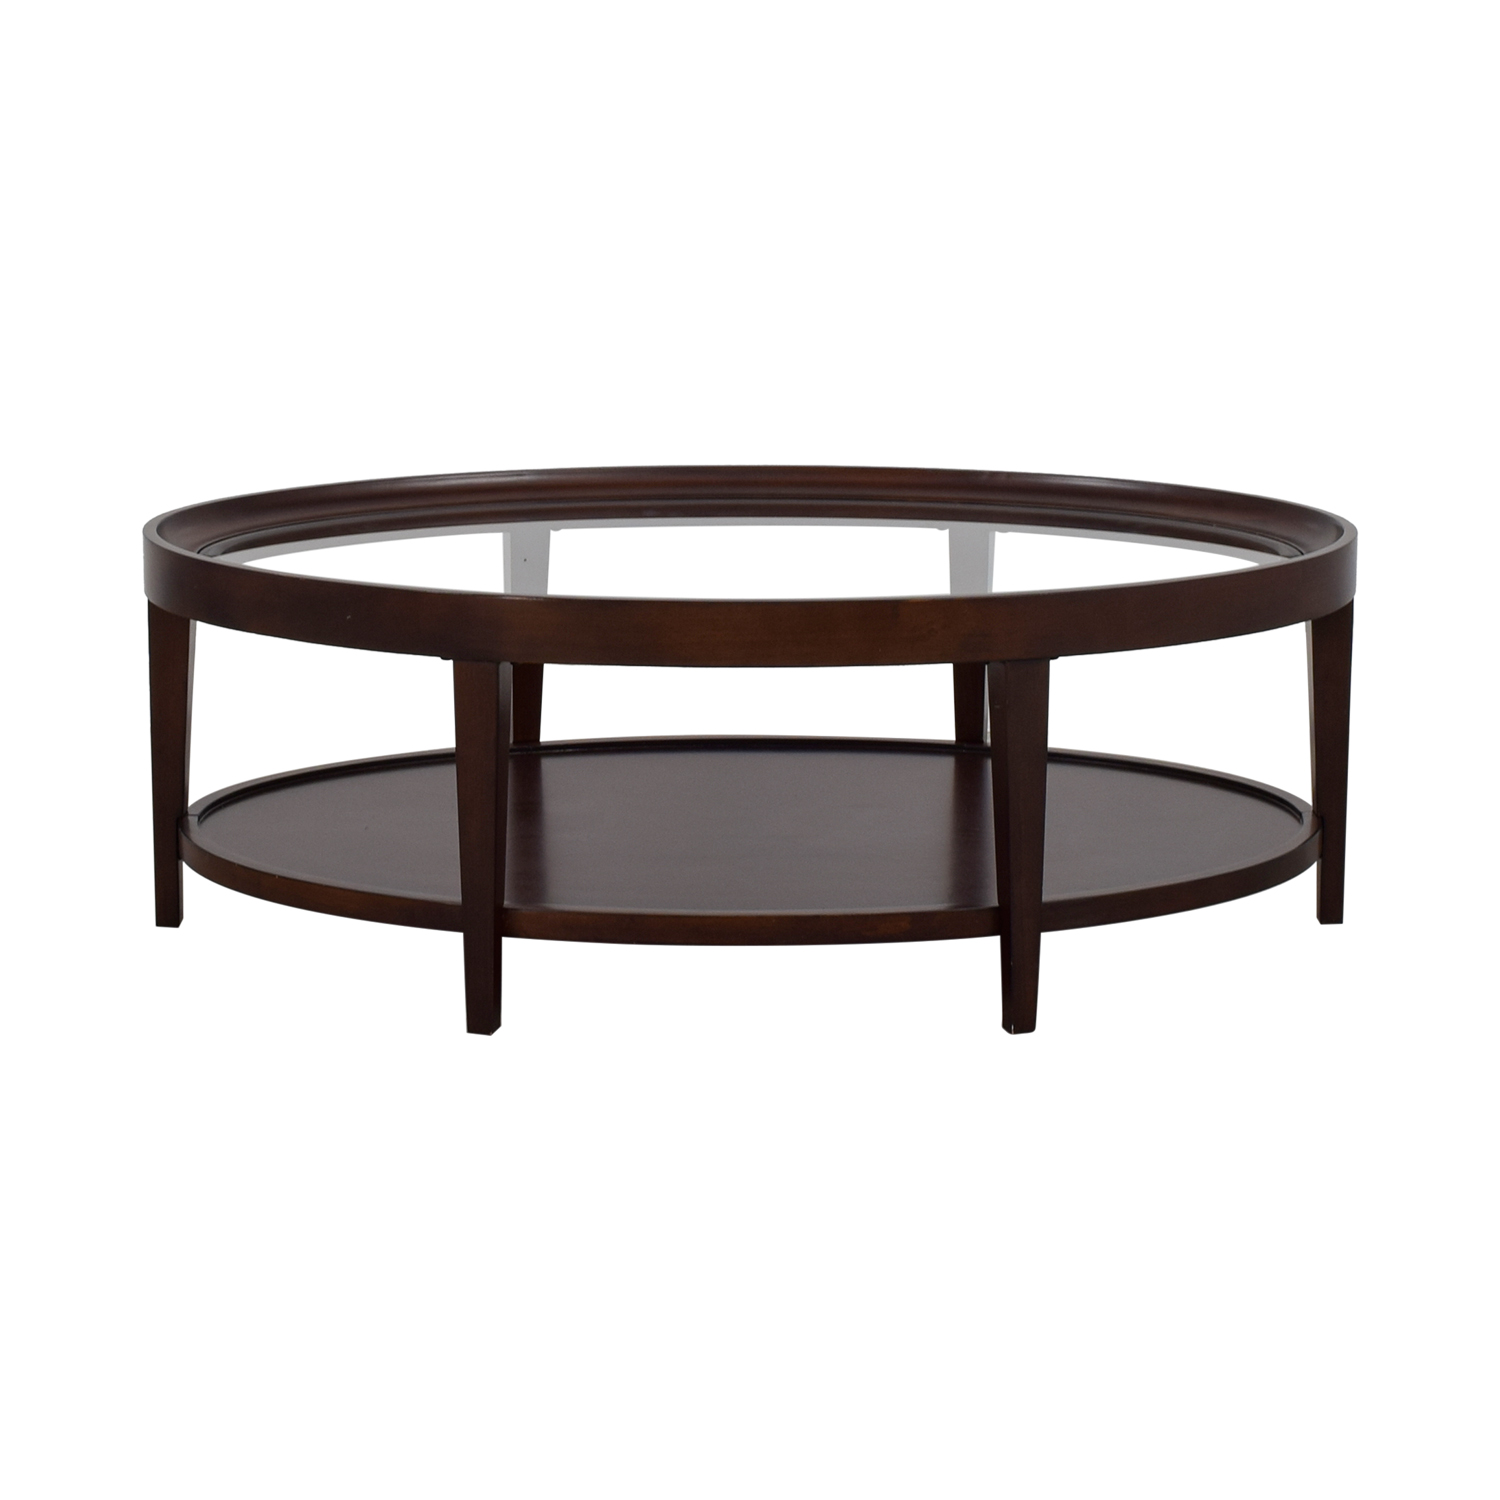 Carson Oval Glass and Wood Coffee Table / Tables